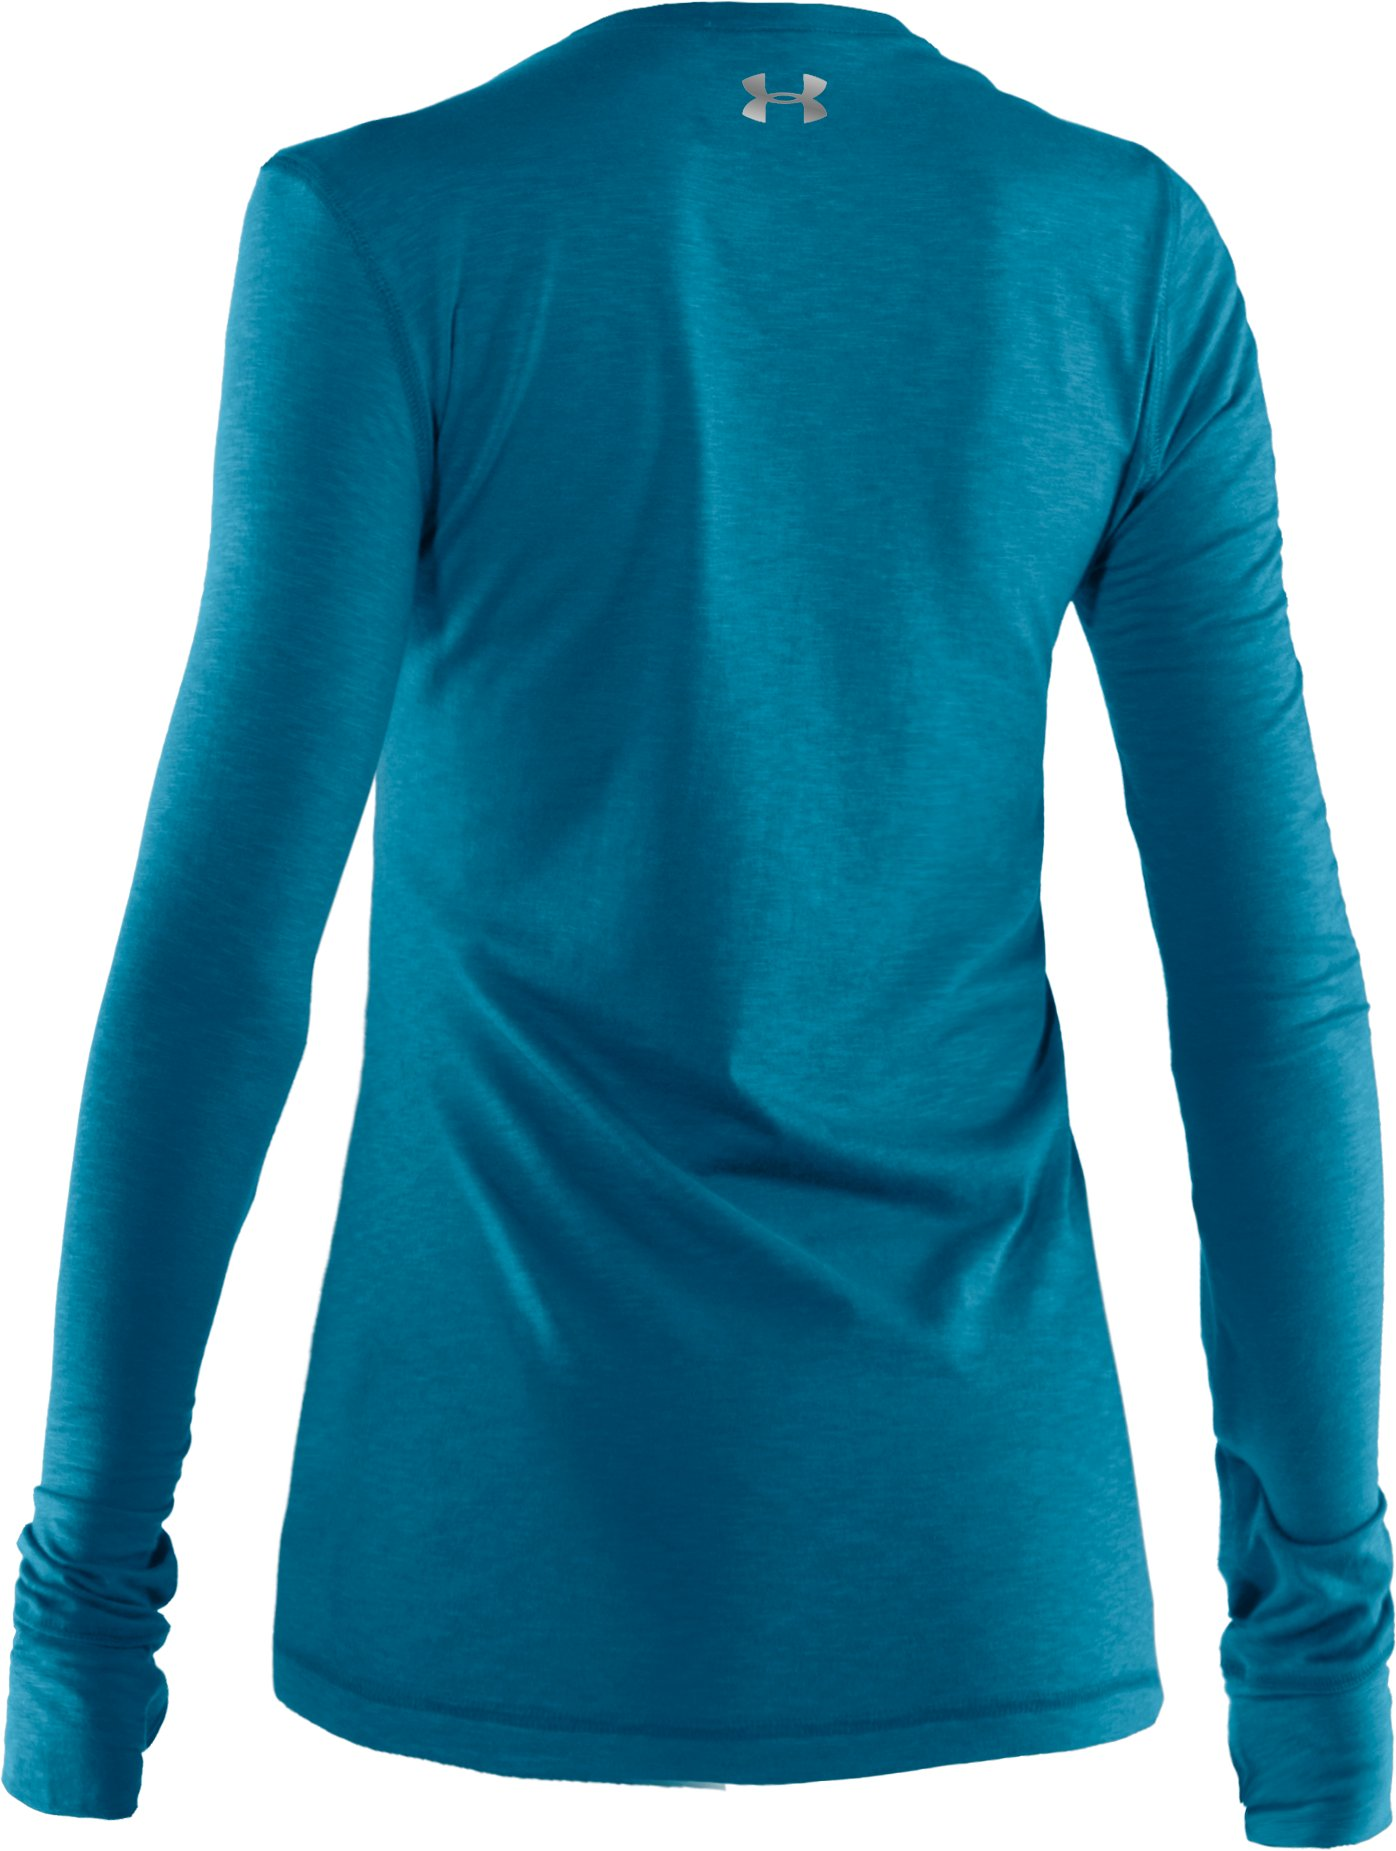 Women's UA Charm Long Sleeve Shirt, Break,